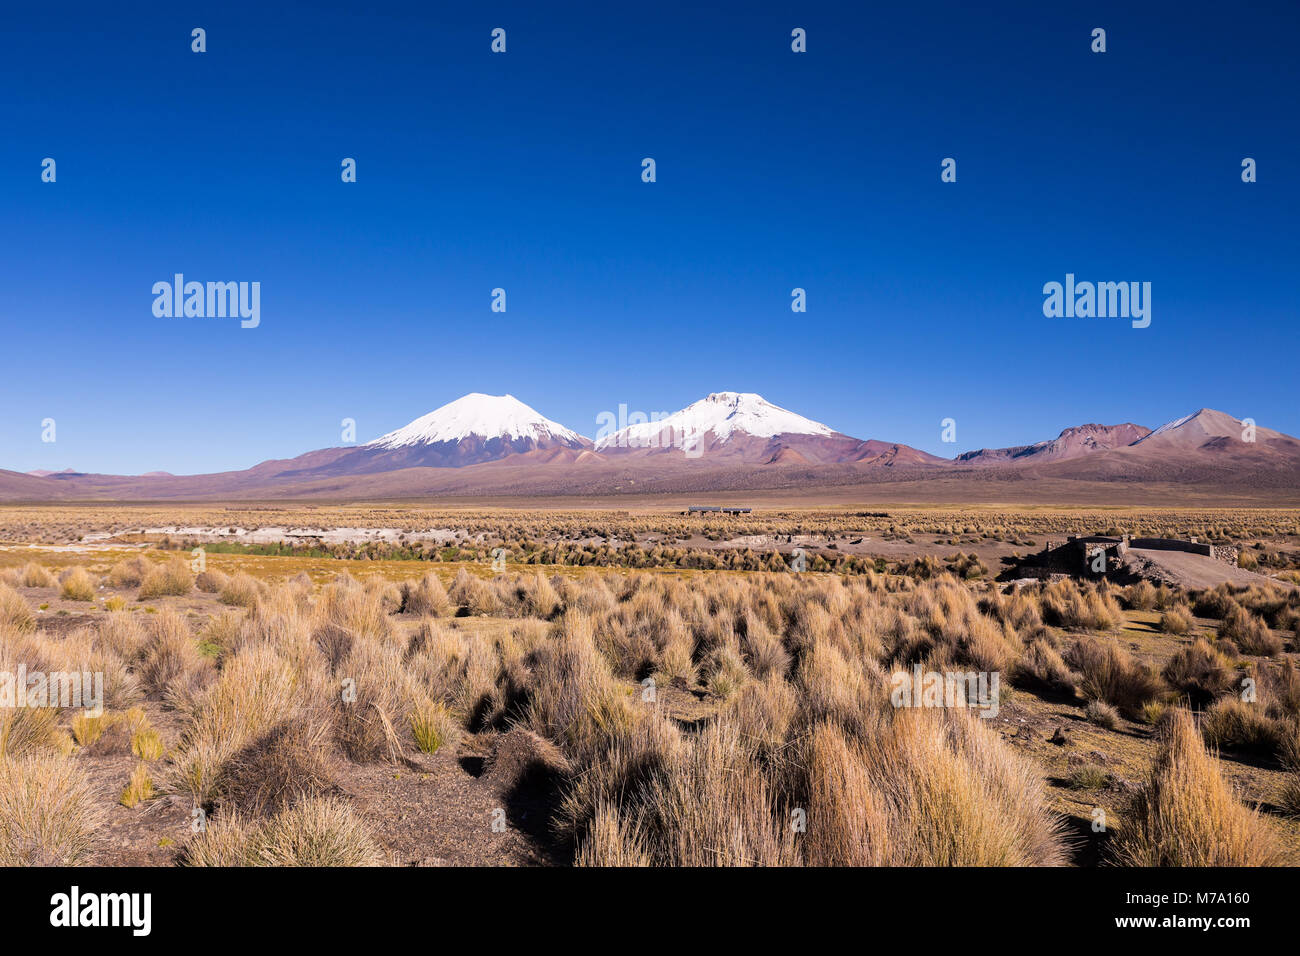 Bolivian panoramic: High Andean tundra landscape in the mountains of the Andes. The weather Andean Highlands Puna - Stock Image